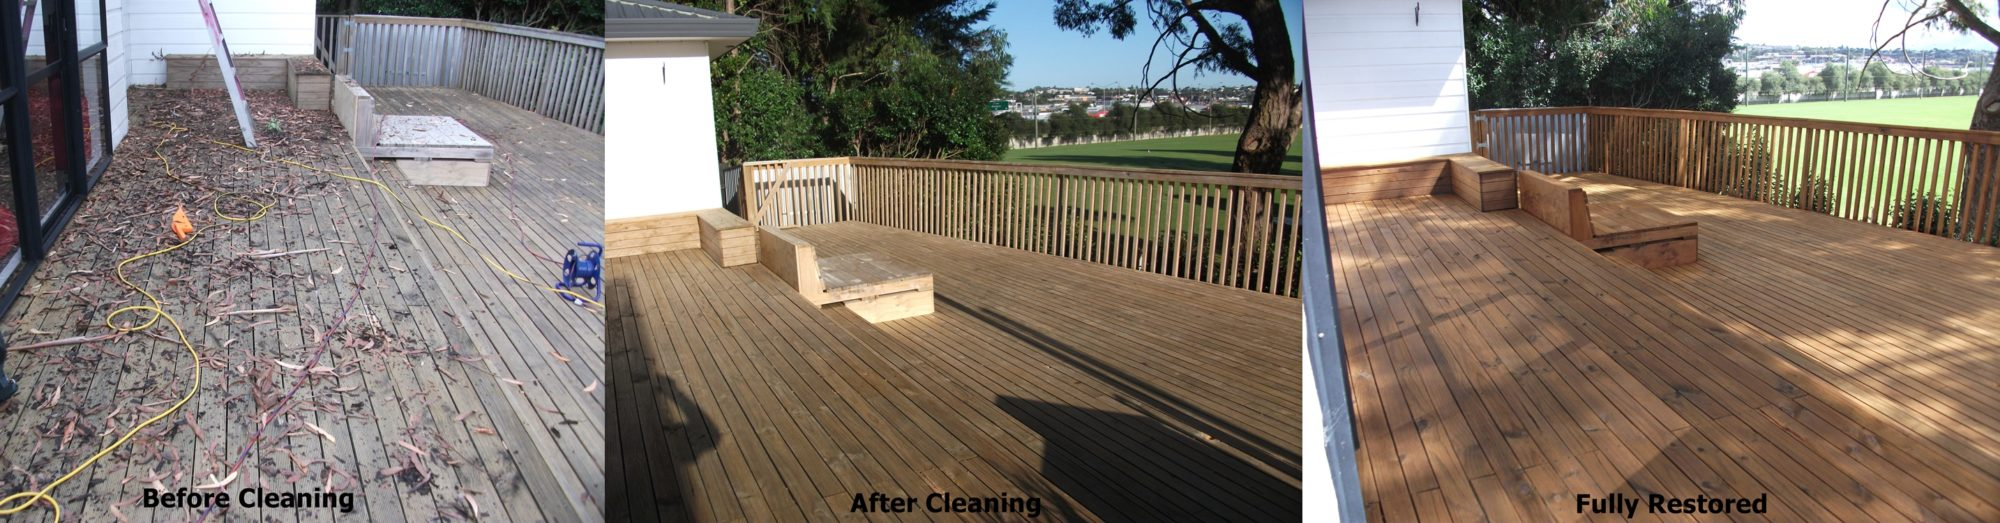 Deck Clean Limited